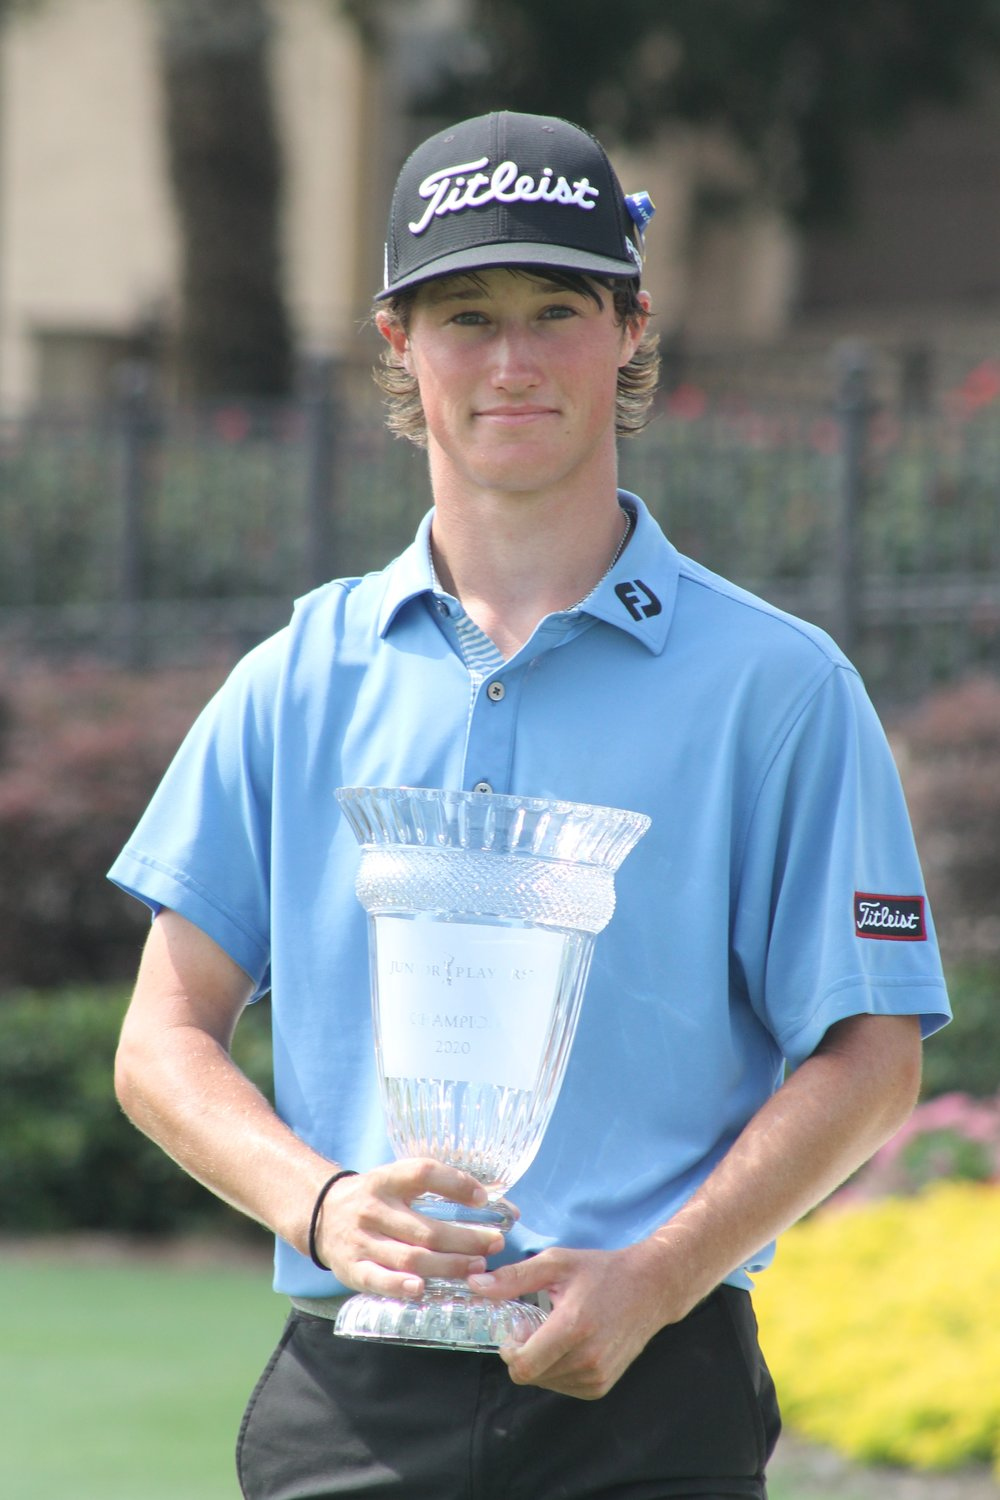 David Ford holds the trophy after winning the Junior PLAYERS Championship.